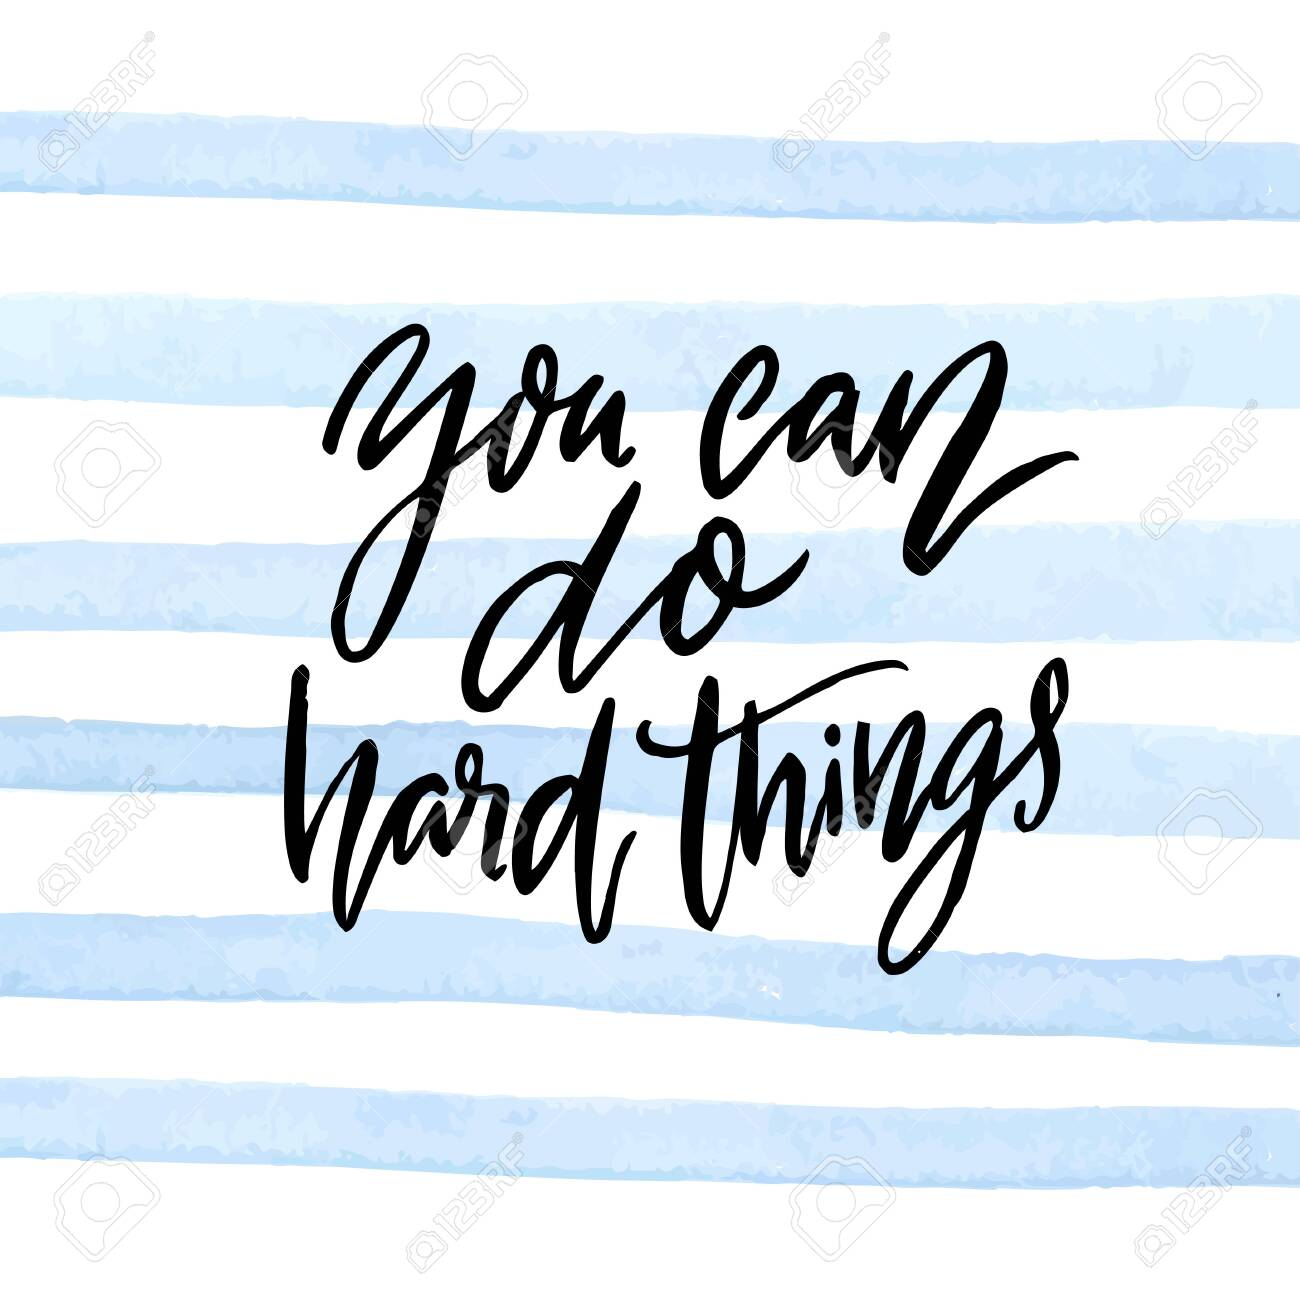 You can do hard things. Motivational quote calligraphy inscription on blue watercolor stripes - 155336701